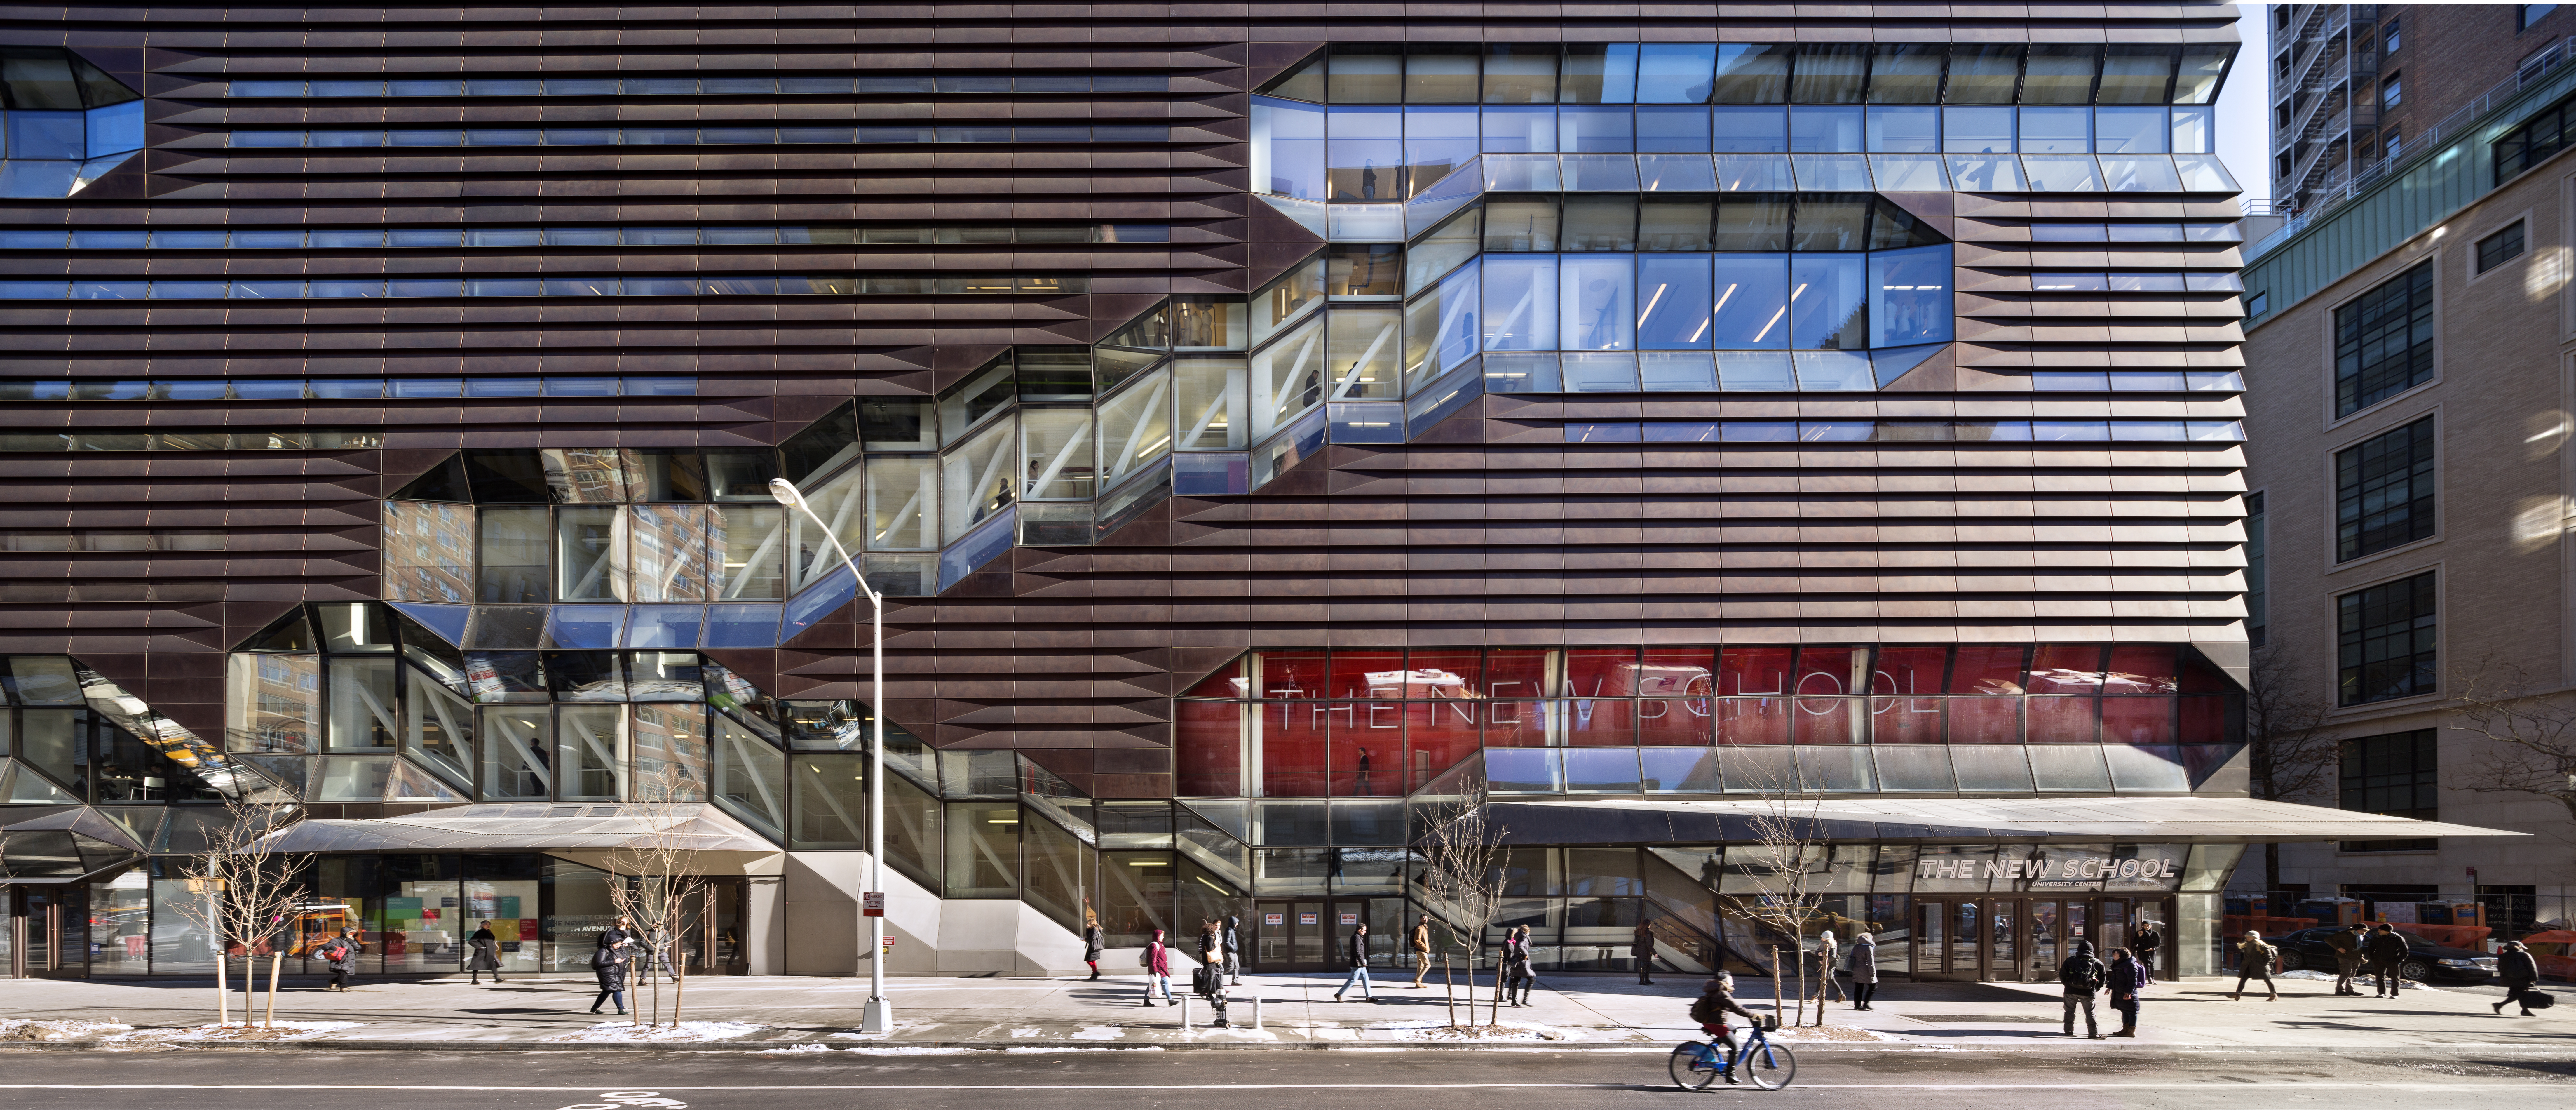 University Center, The New School by Skidmore, Owings & Merrill